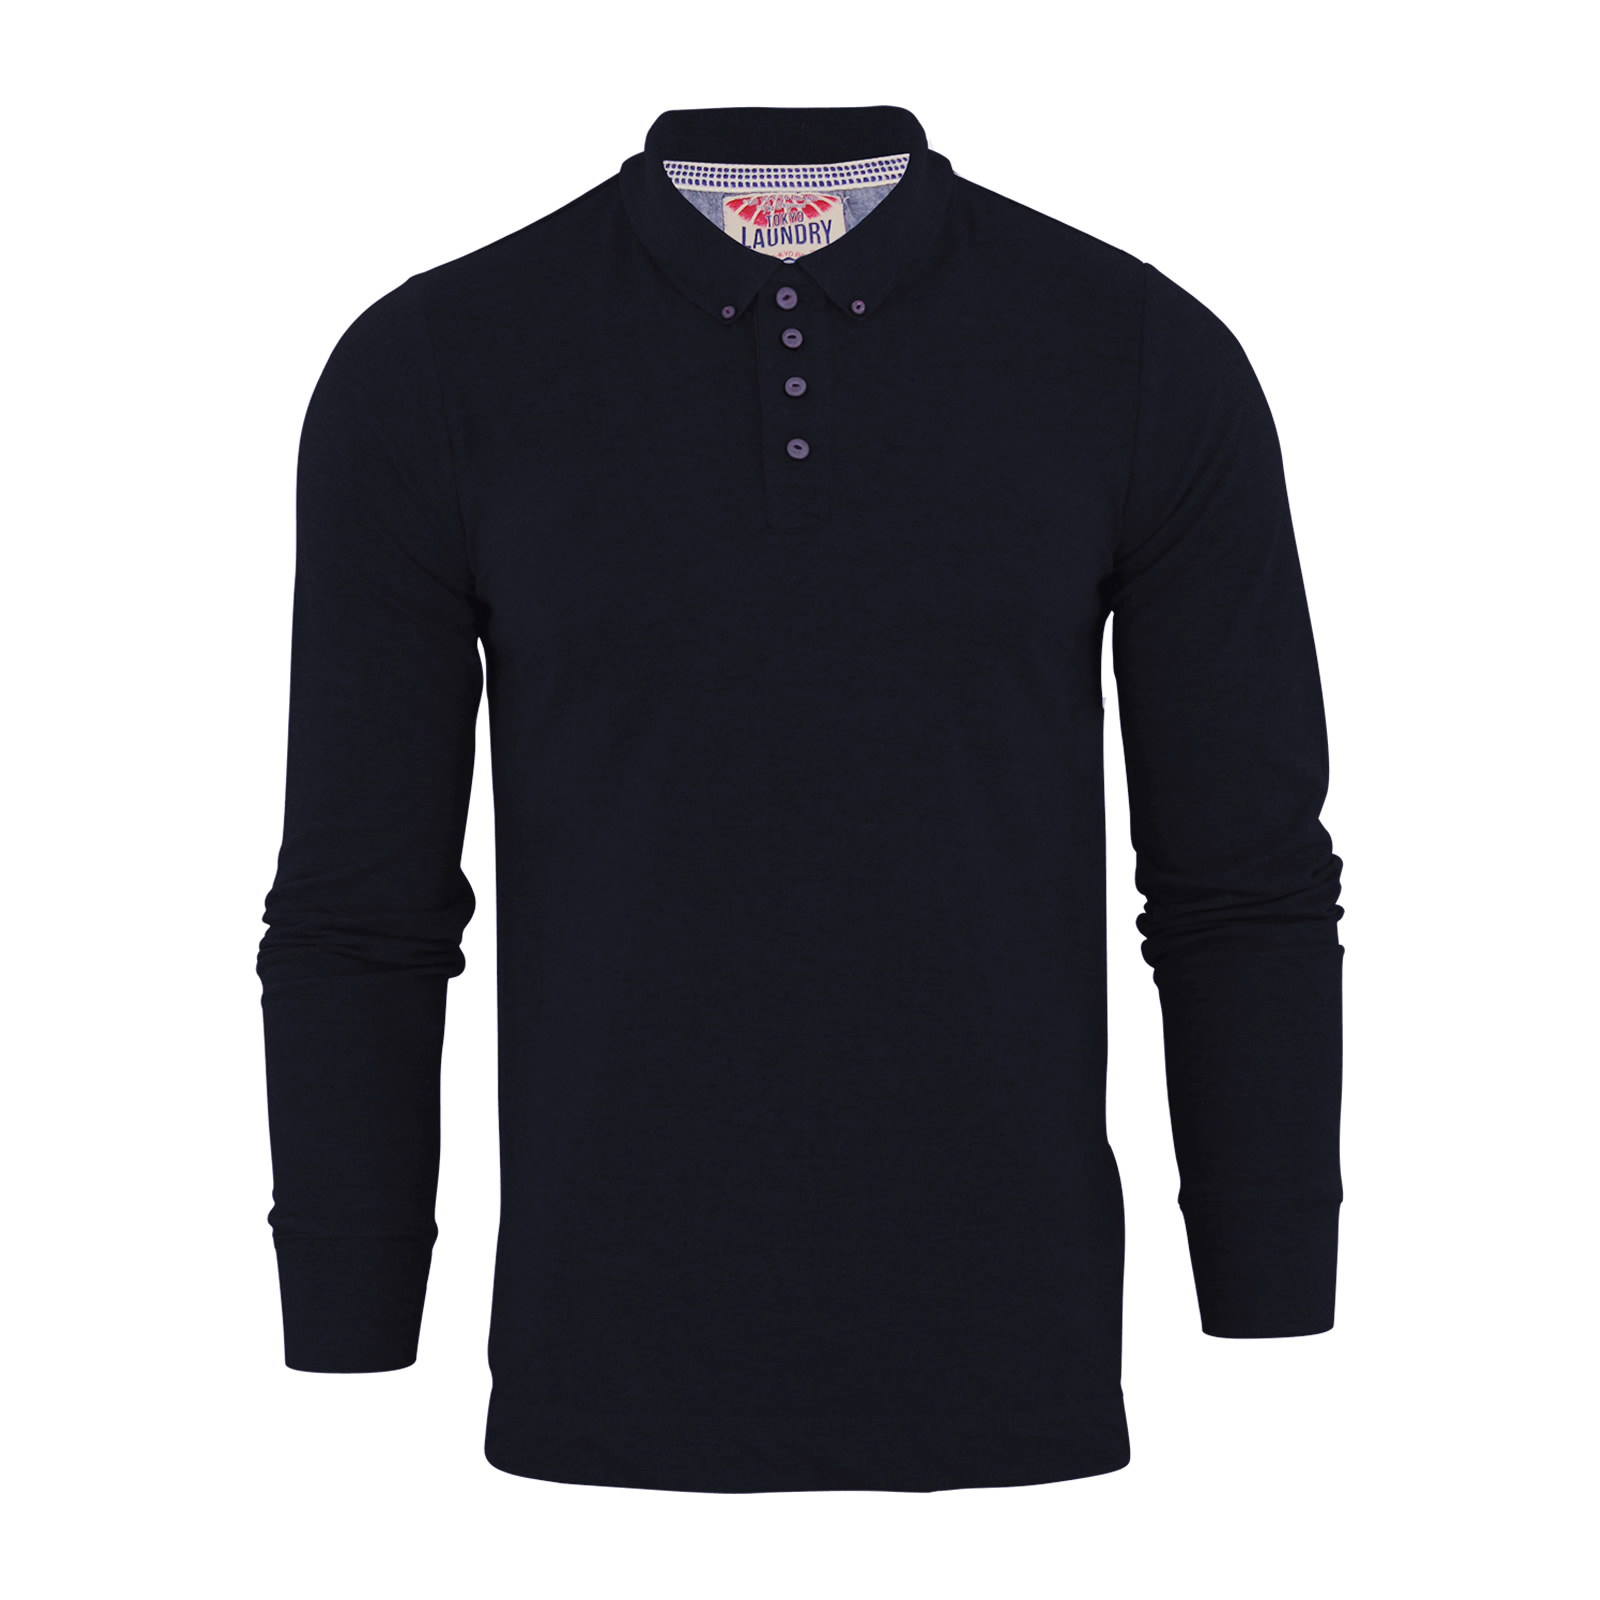 Mens polo t shirt tokyo laundry lowell cotton long sleeve for Mens casual collared shirts